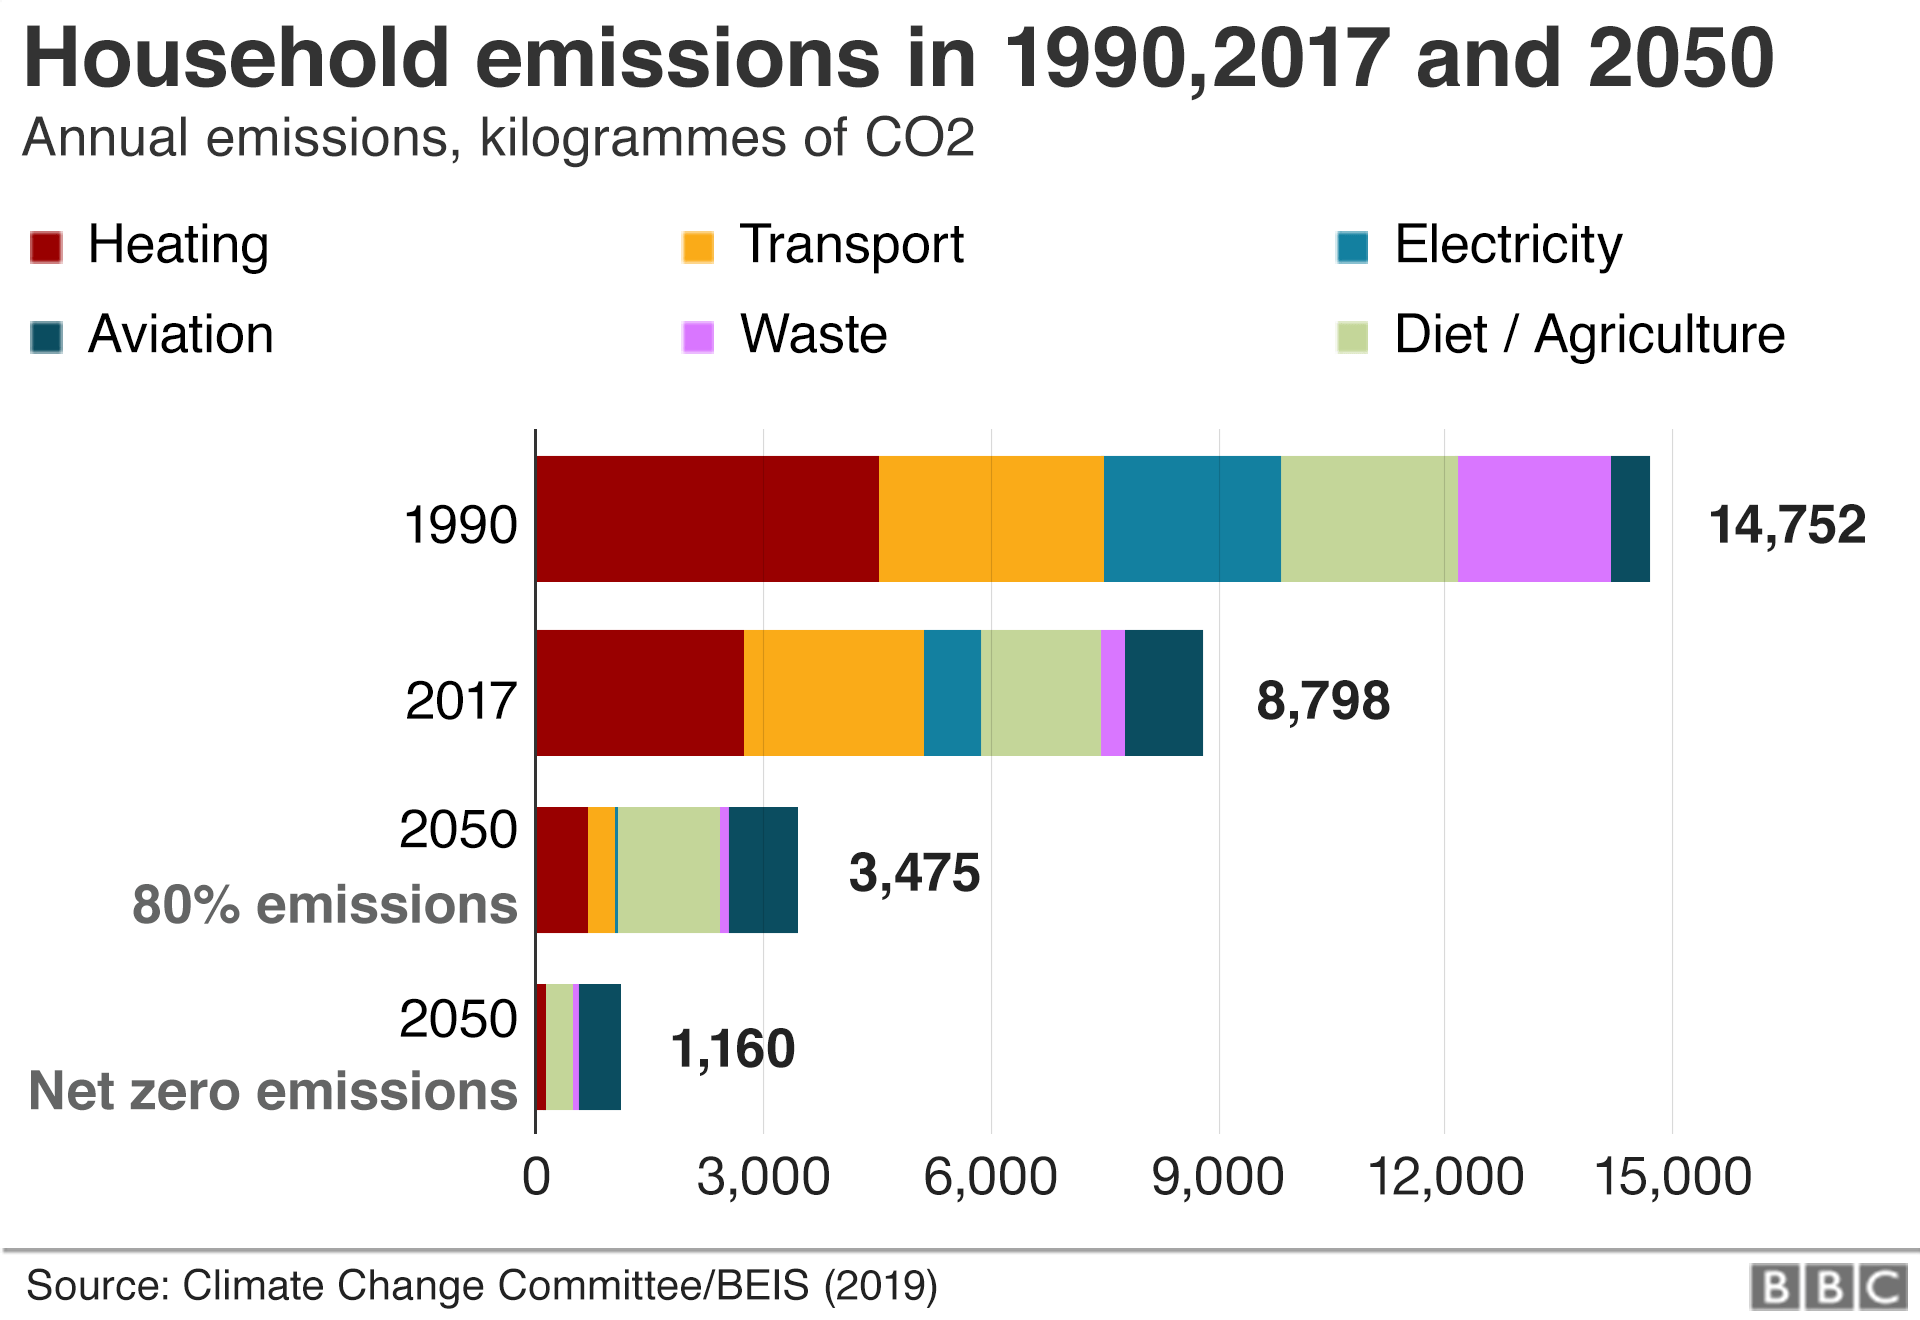 UK Household Emissions in 1990, 2017 and 2050